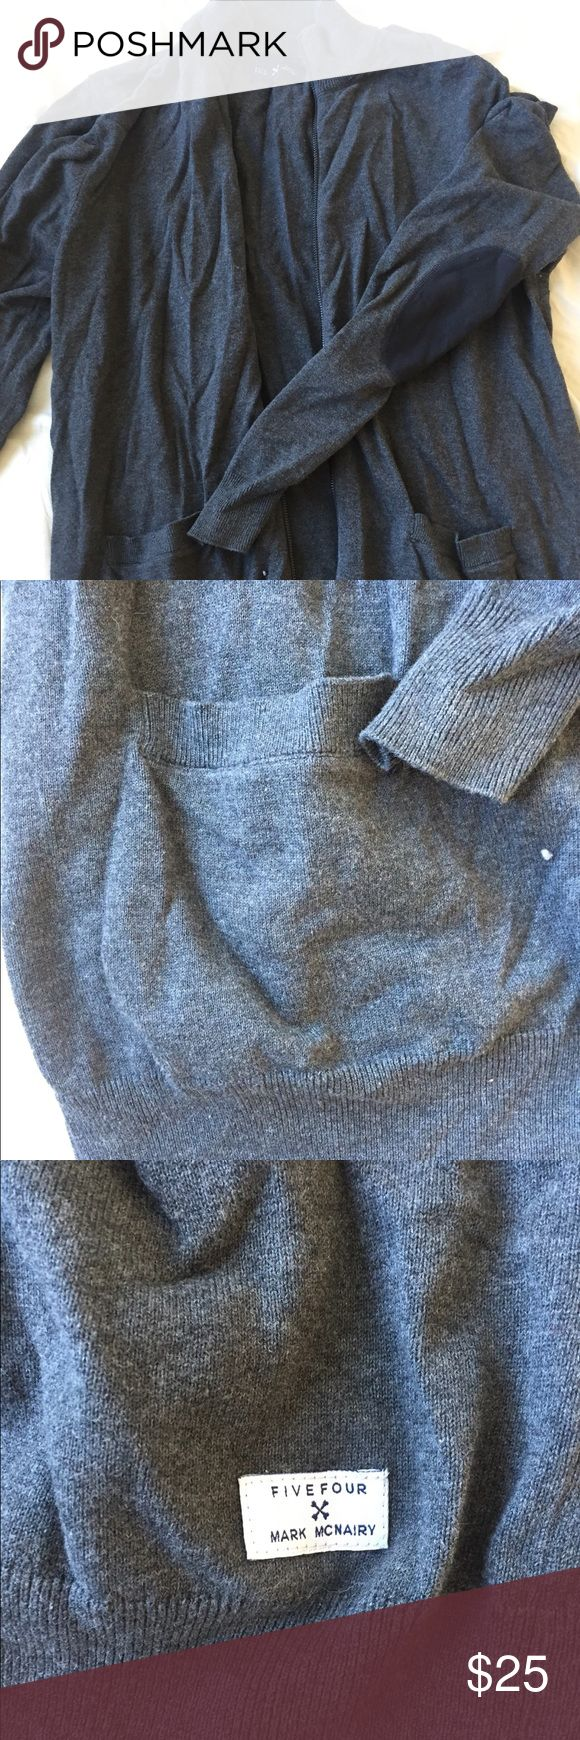 Five Four Men's' Zip Cardigan Zipper works. Very soft. Cute professor-y elbow patches. Worn maybe once or twice. Five Four Sweaters Cardigan